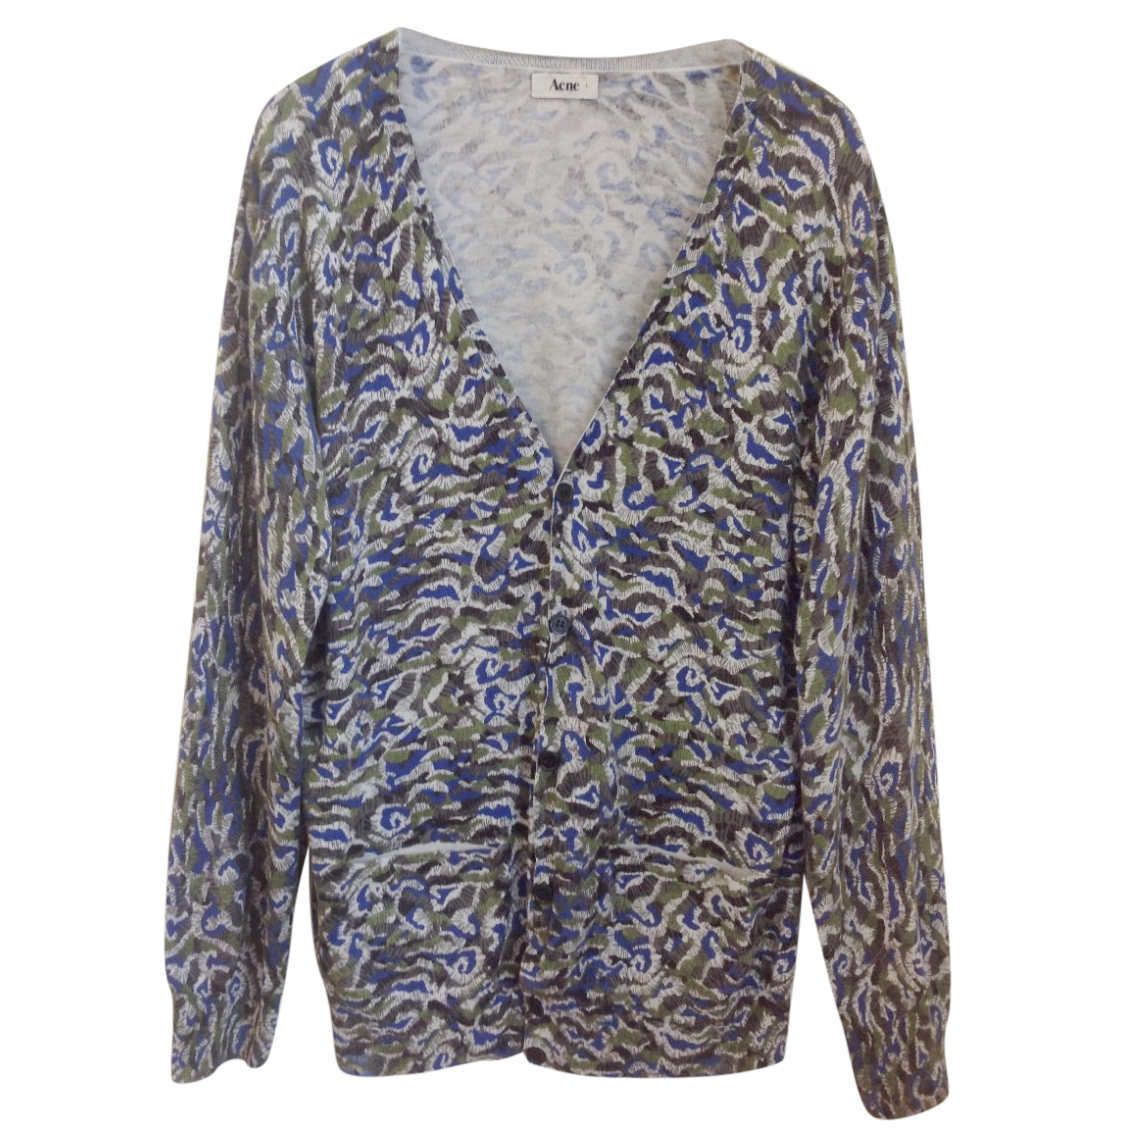 Acne abstract print cardigan